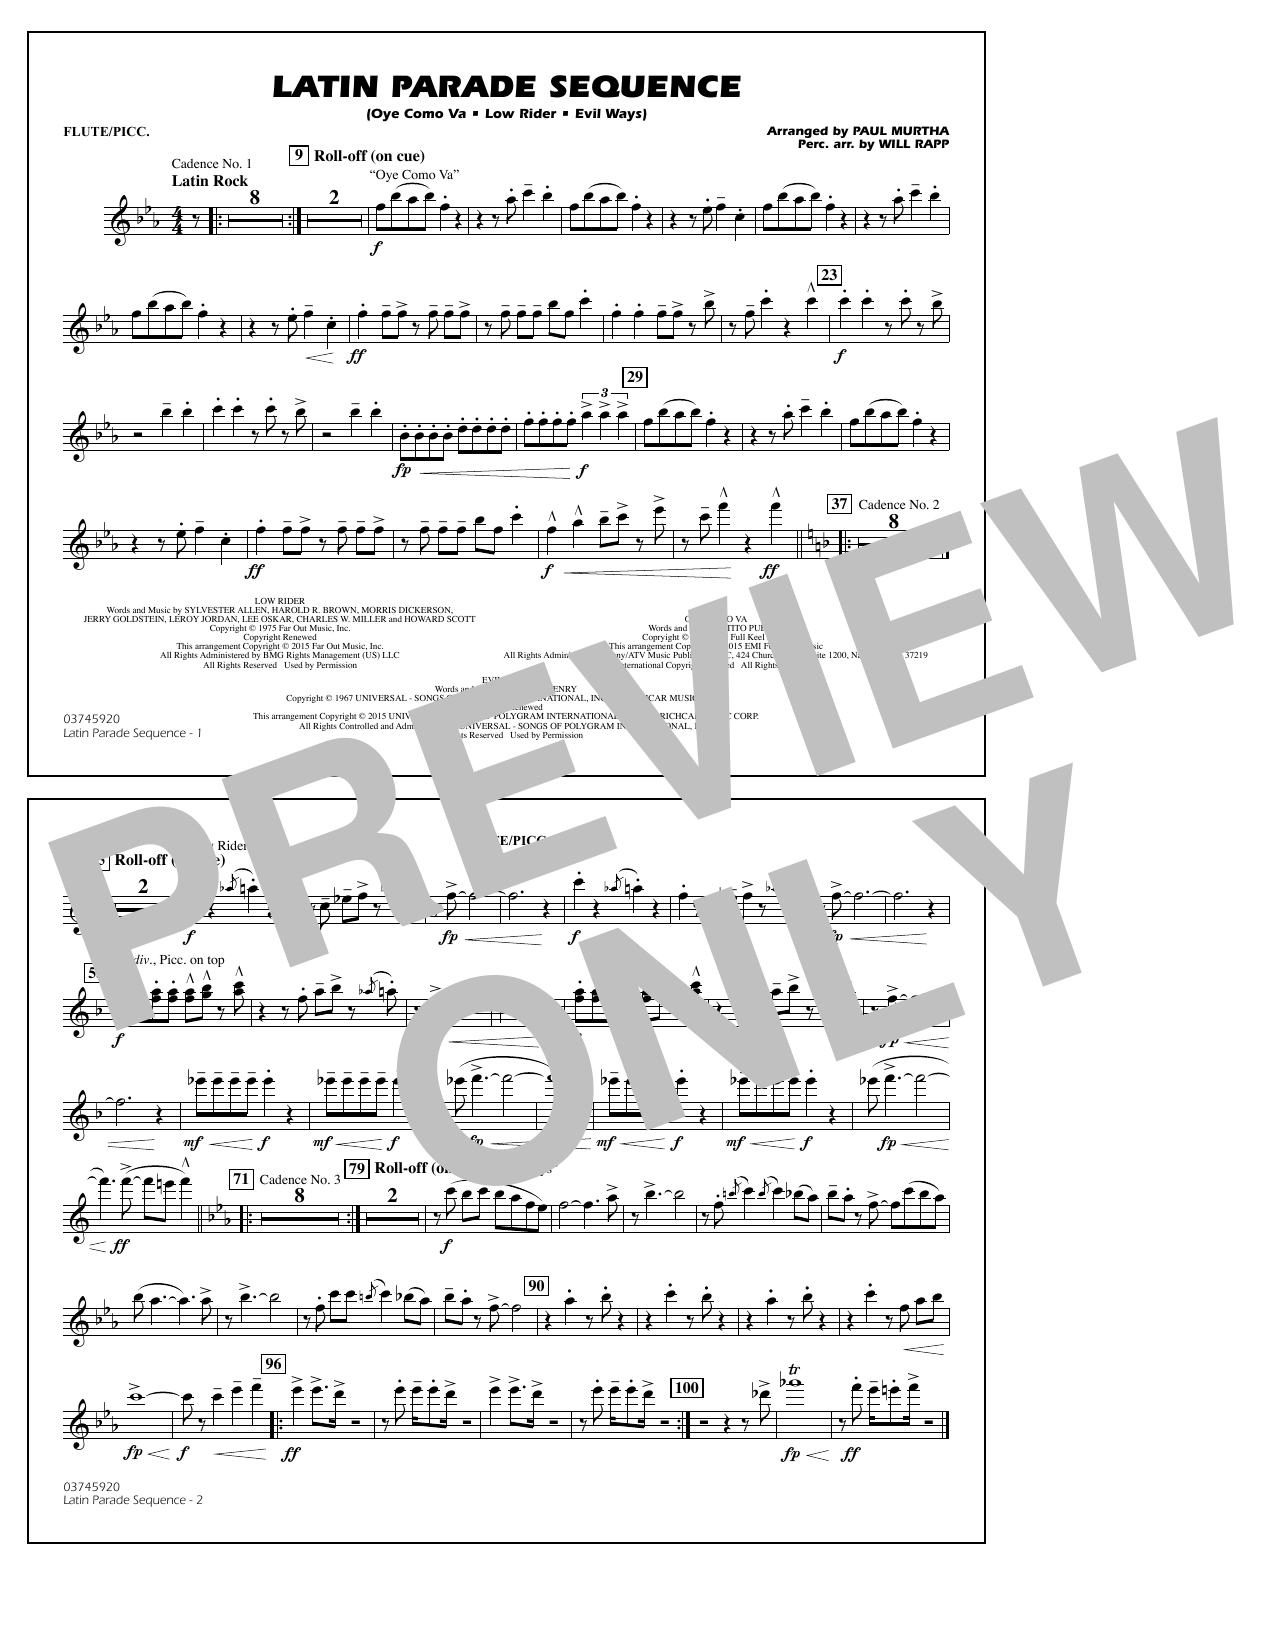 Latin Parade Sequence - Flute/Piccolo (Marching Band)